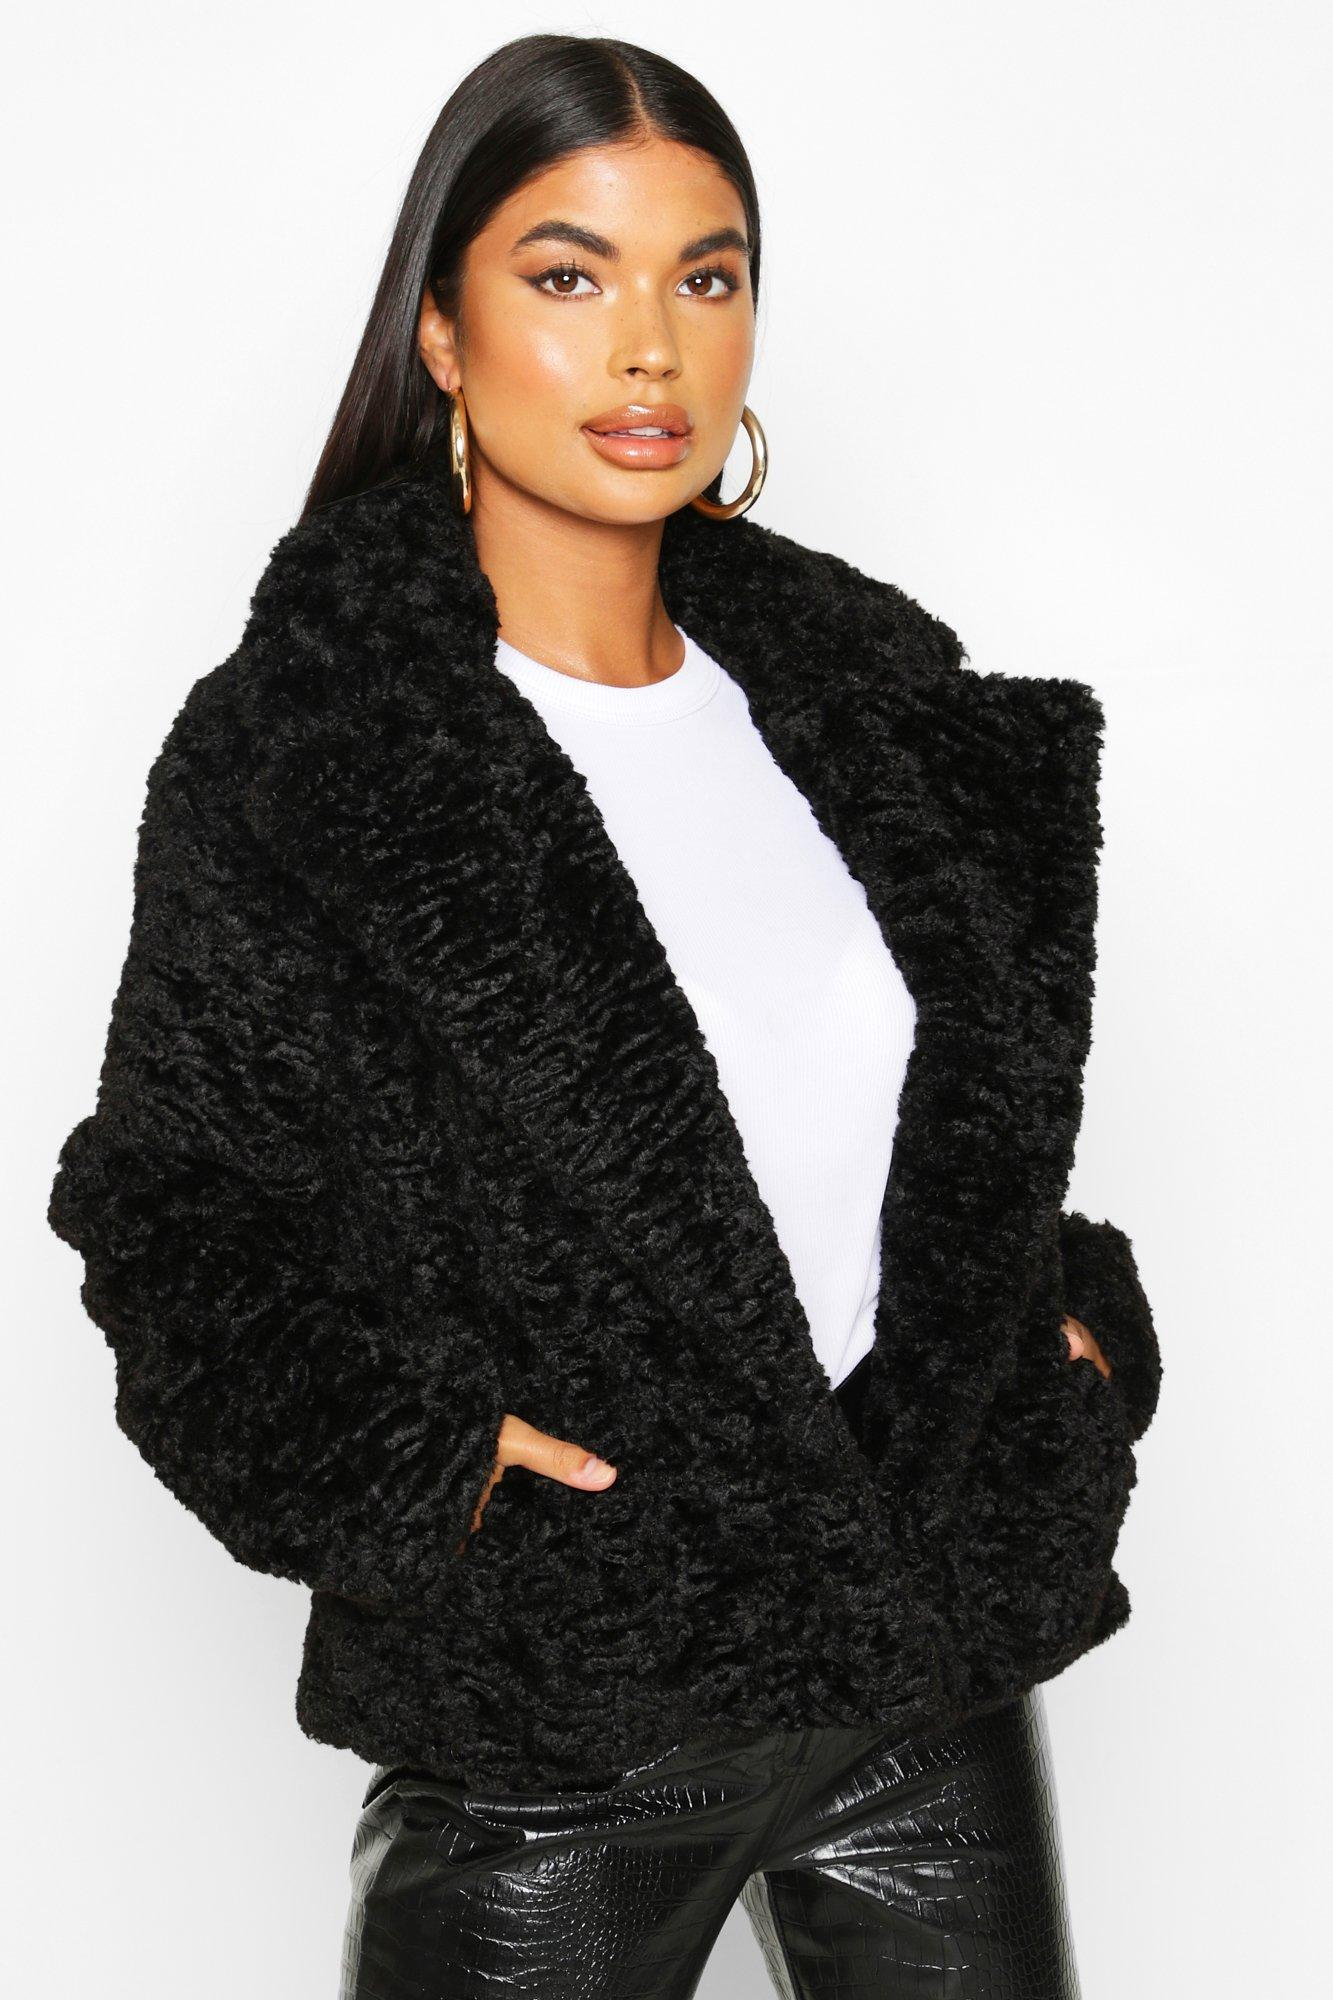 boohoo Womens Petite Luxe Faux Fur Short Jacket - Black - 14, Black